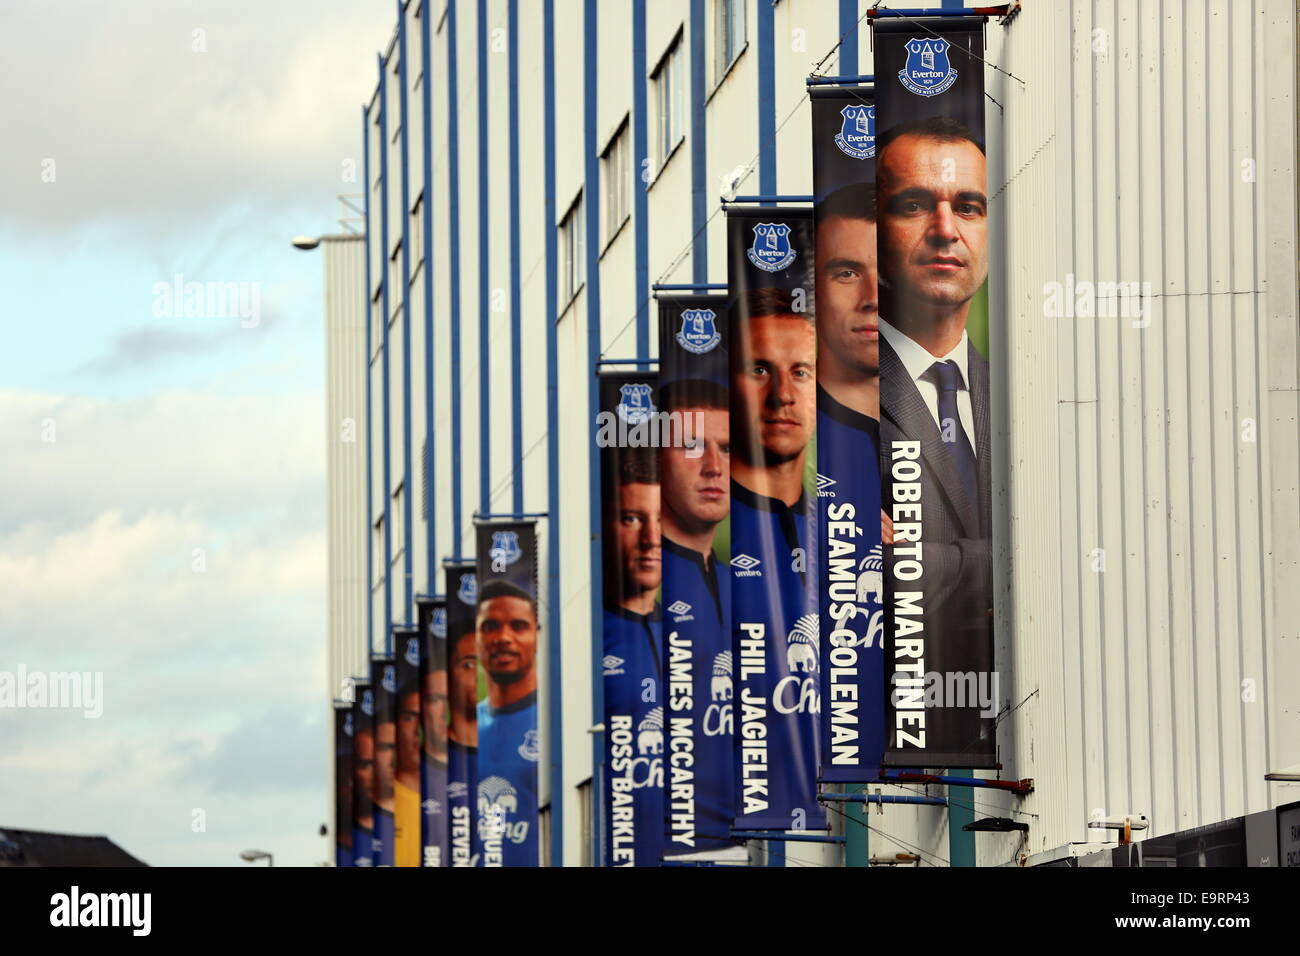 Liverpool, UK. Saturday 01 November 2014  Pictured: Banners with images of Everton manager Roberto Martinez and Stock Photo